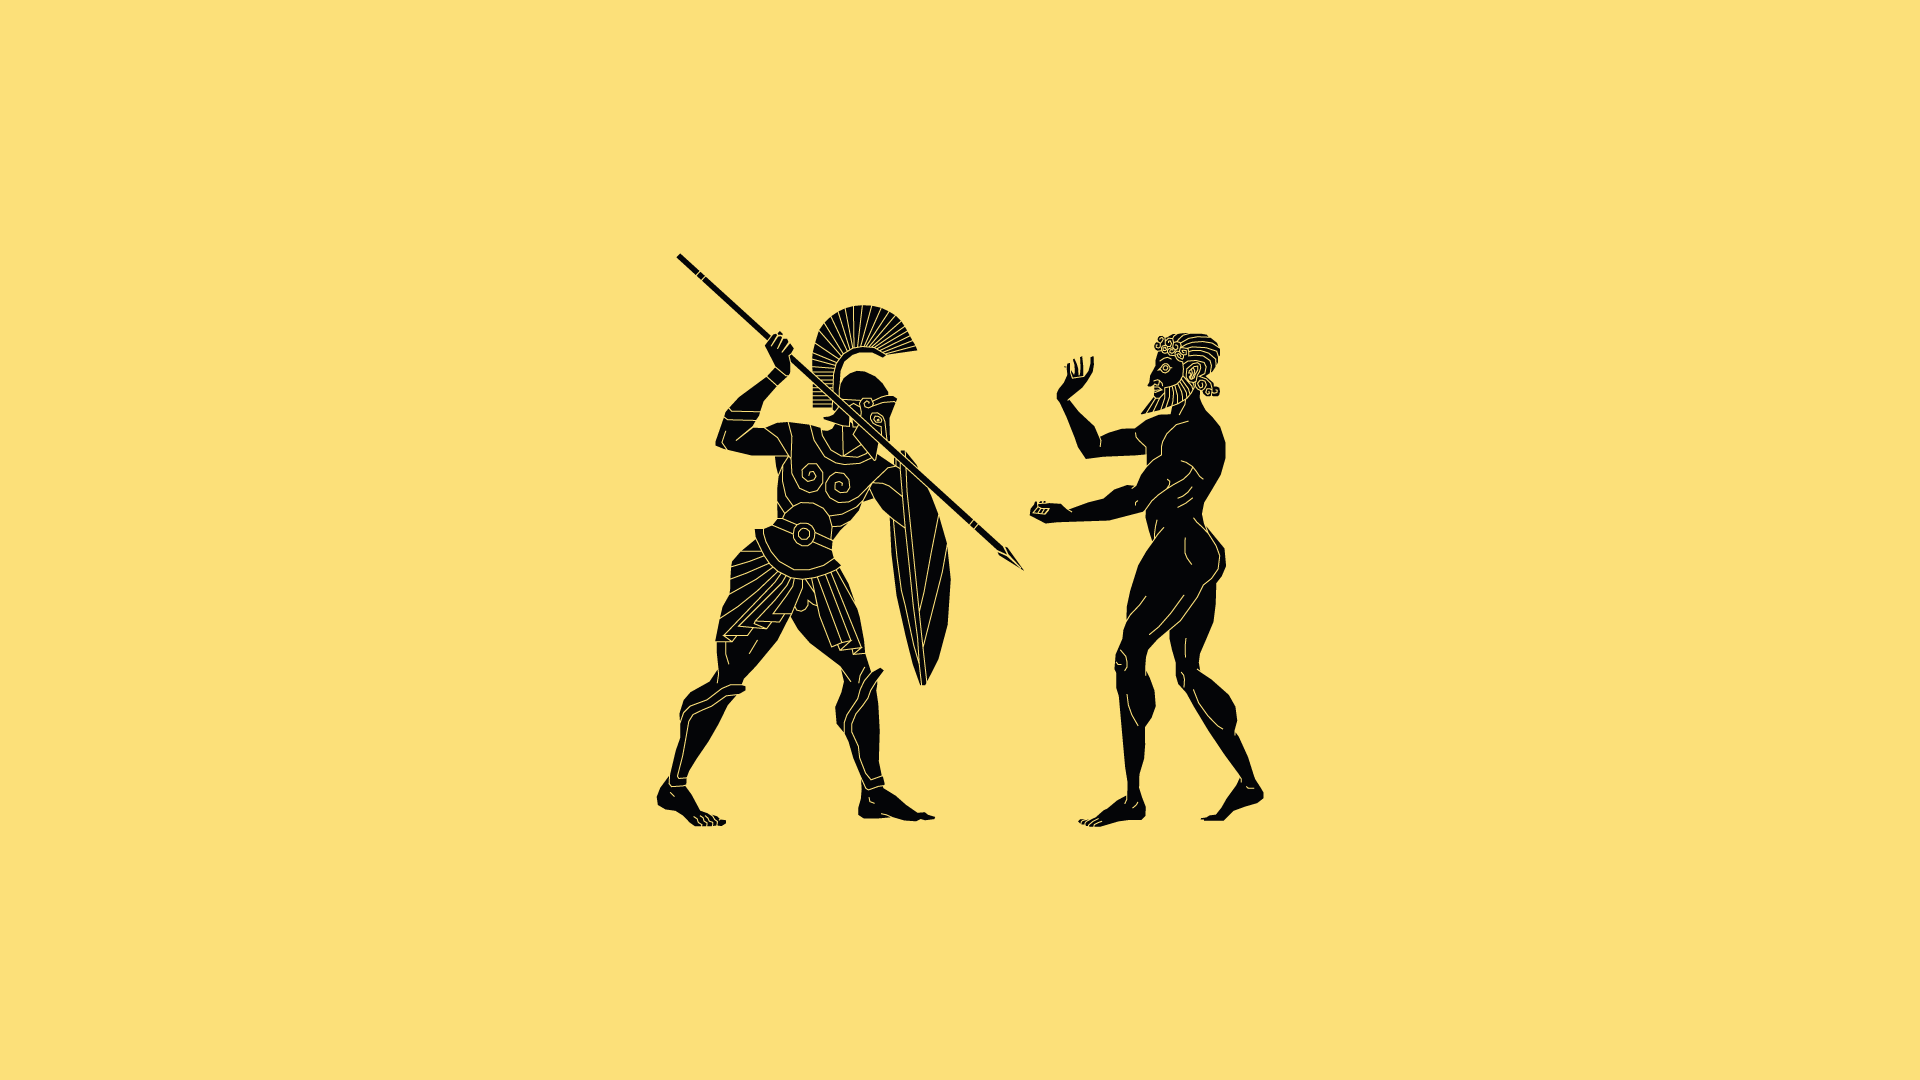 Vectorised illustration in the style of ancient Greek red-figure pottery